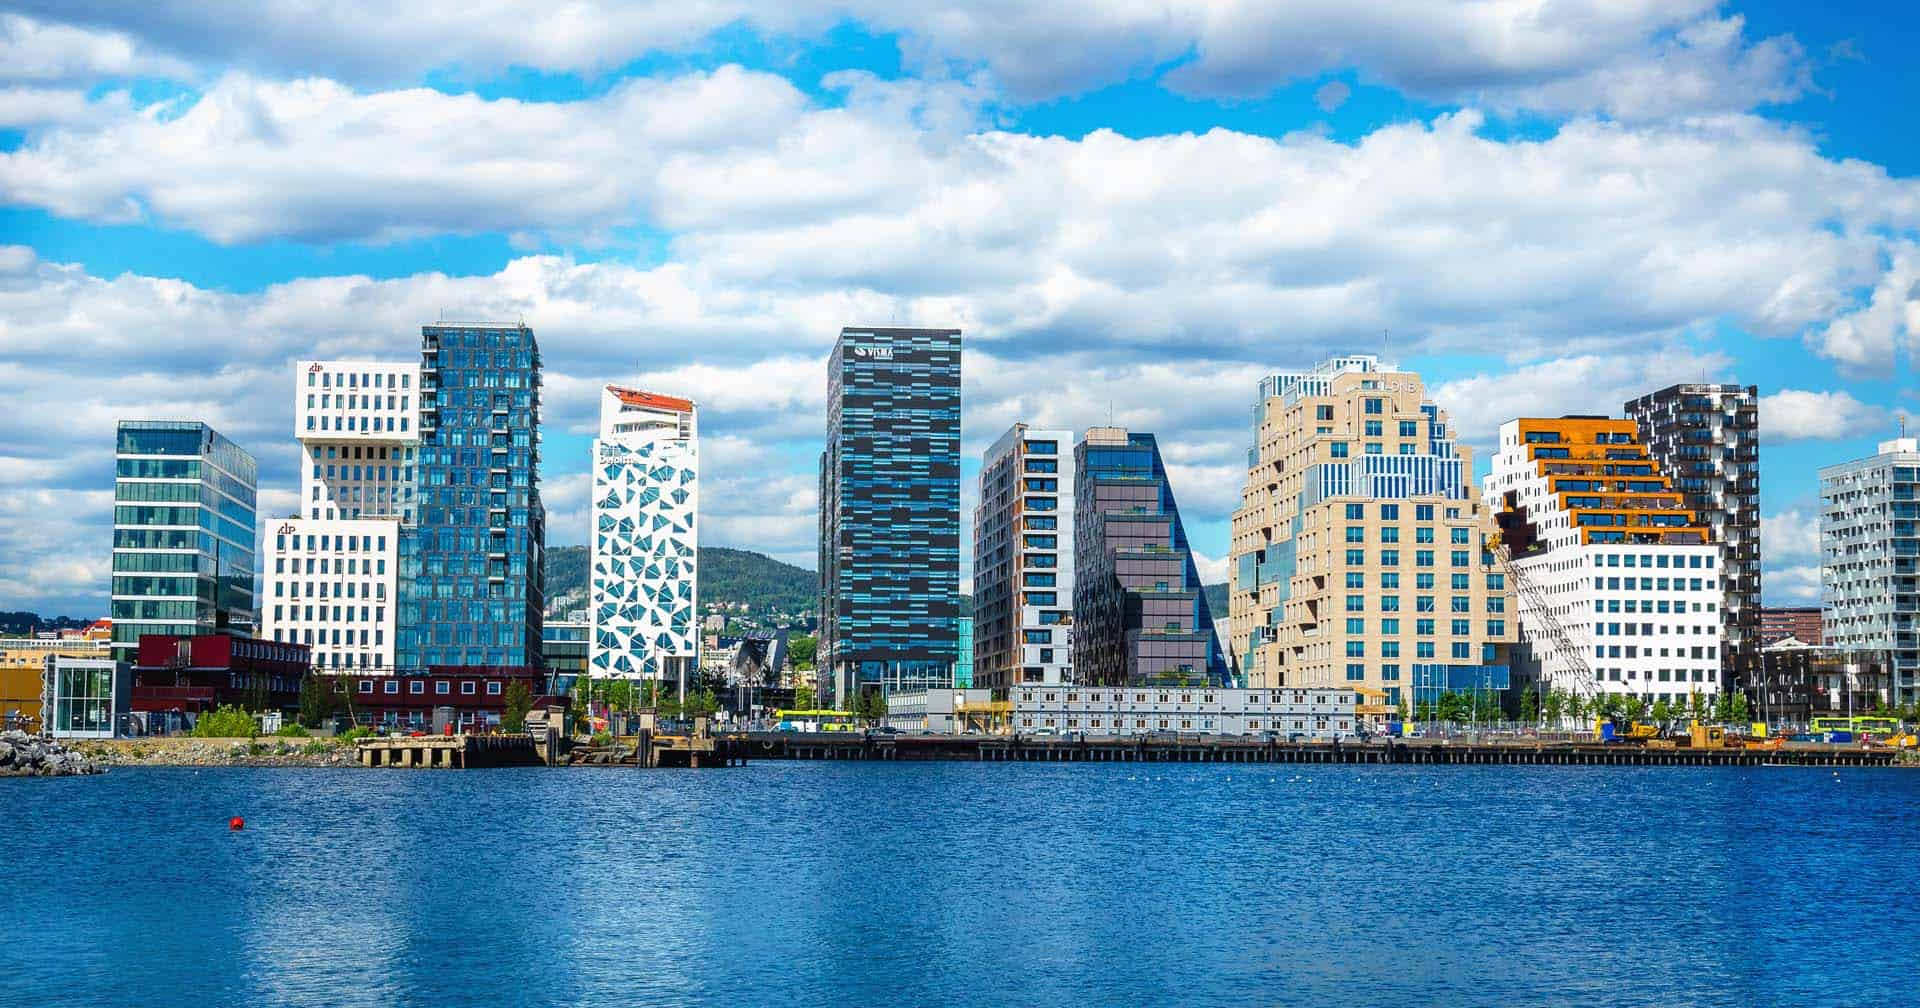 top tourist attractions in oslo norway featured